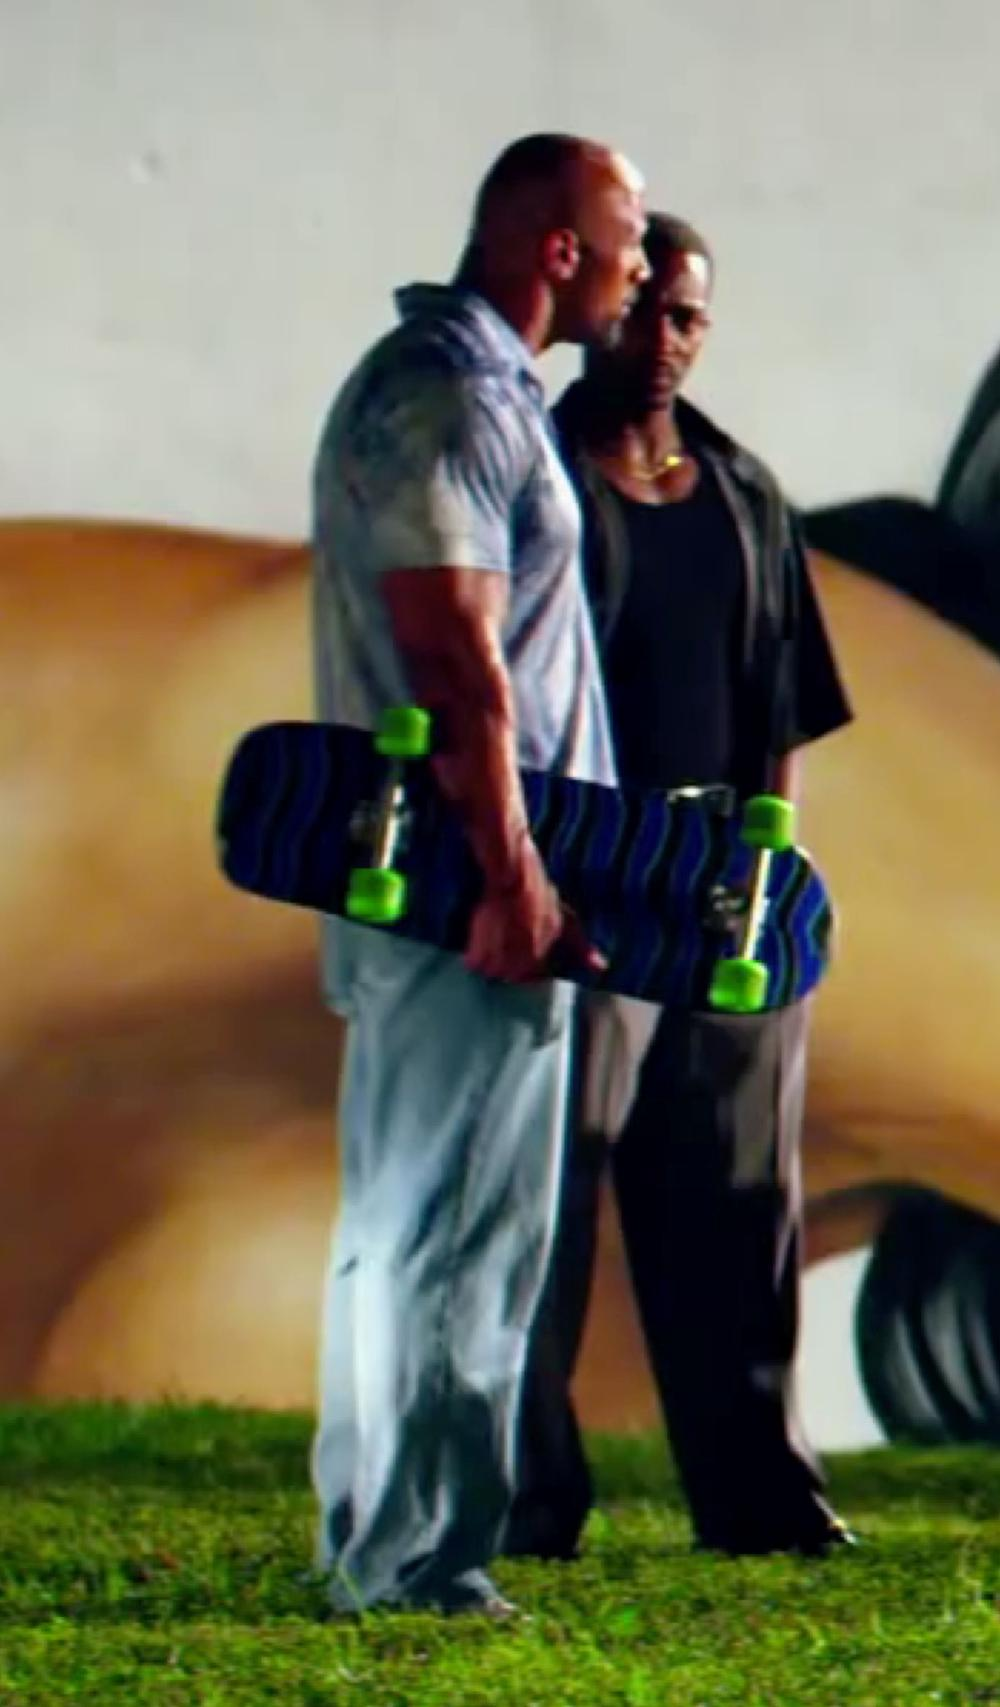 Dwayne Johnson with AG Adriano Goldschmied Graduate Tailored Jeans in Pain & Gain